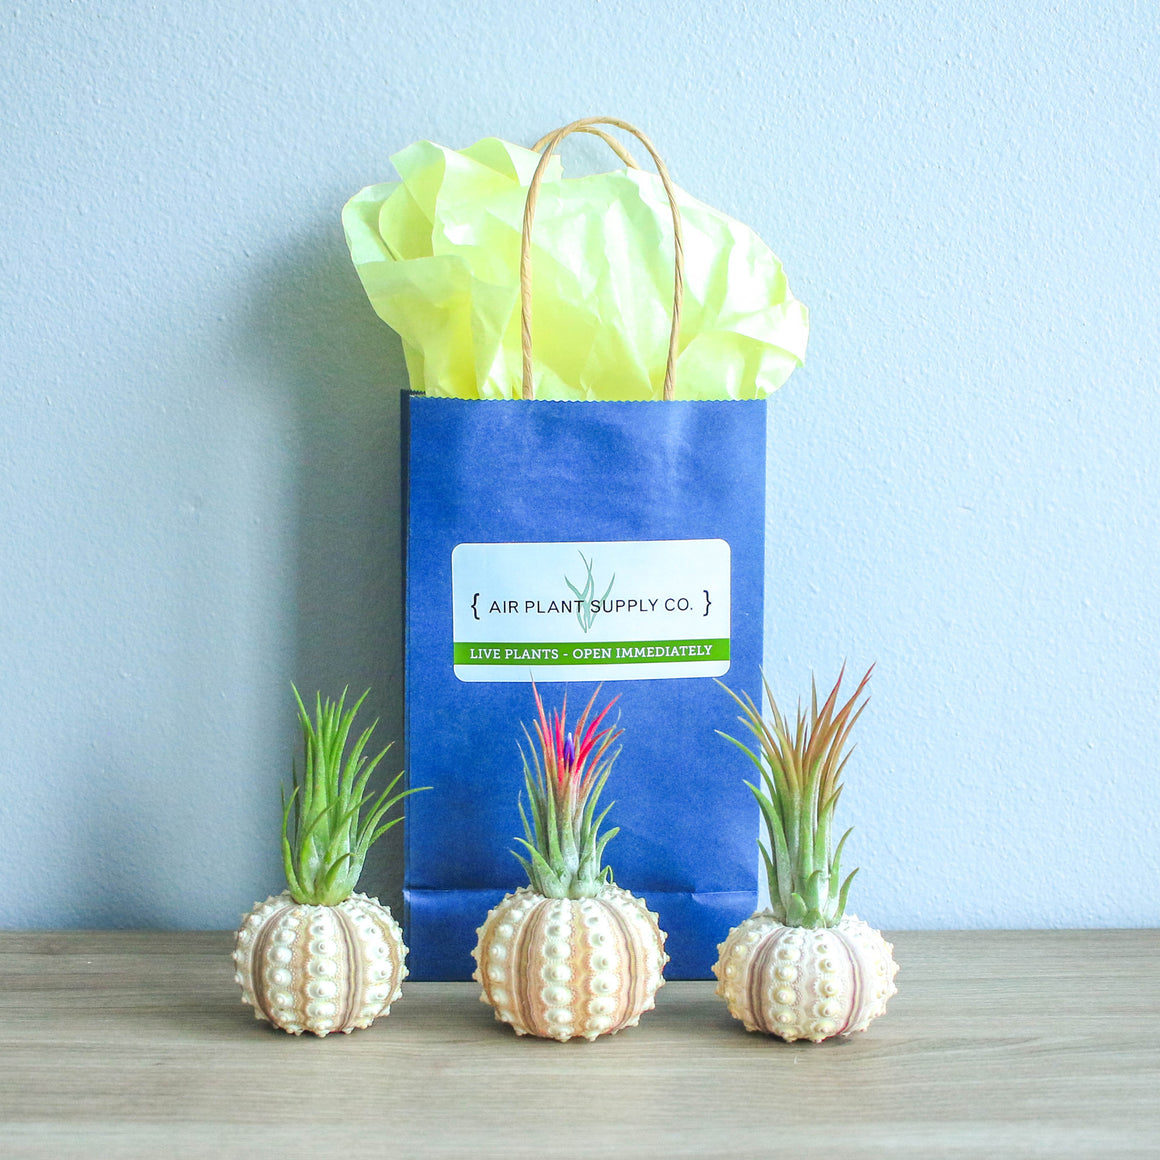 Gift Wrapped Sputnik Urchins with Air Plants